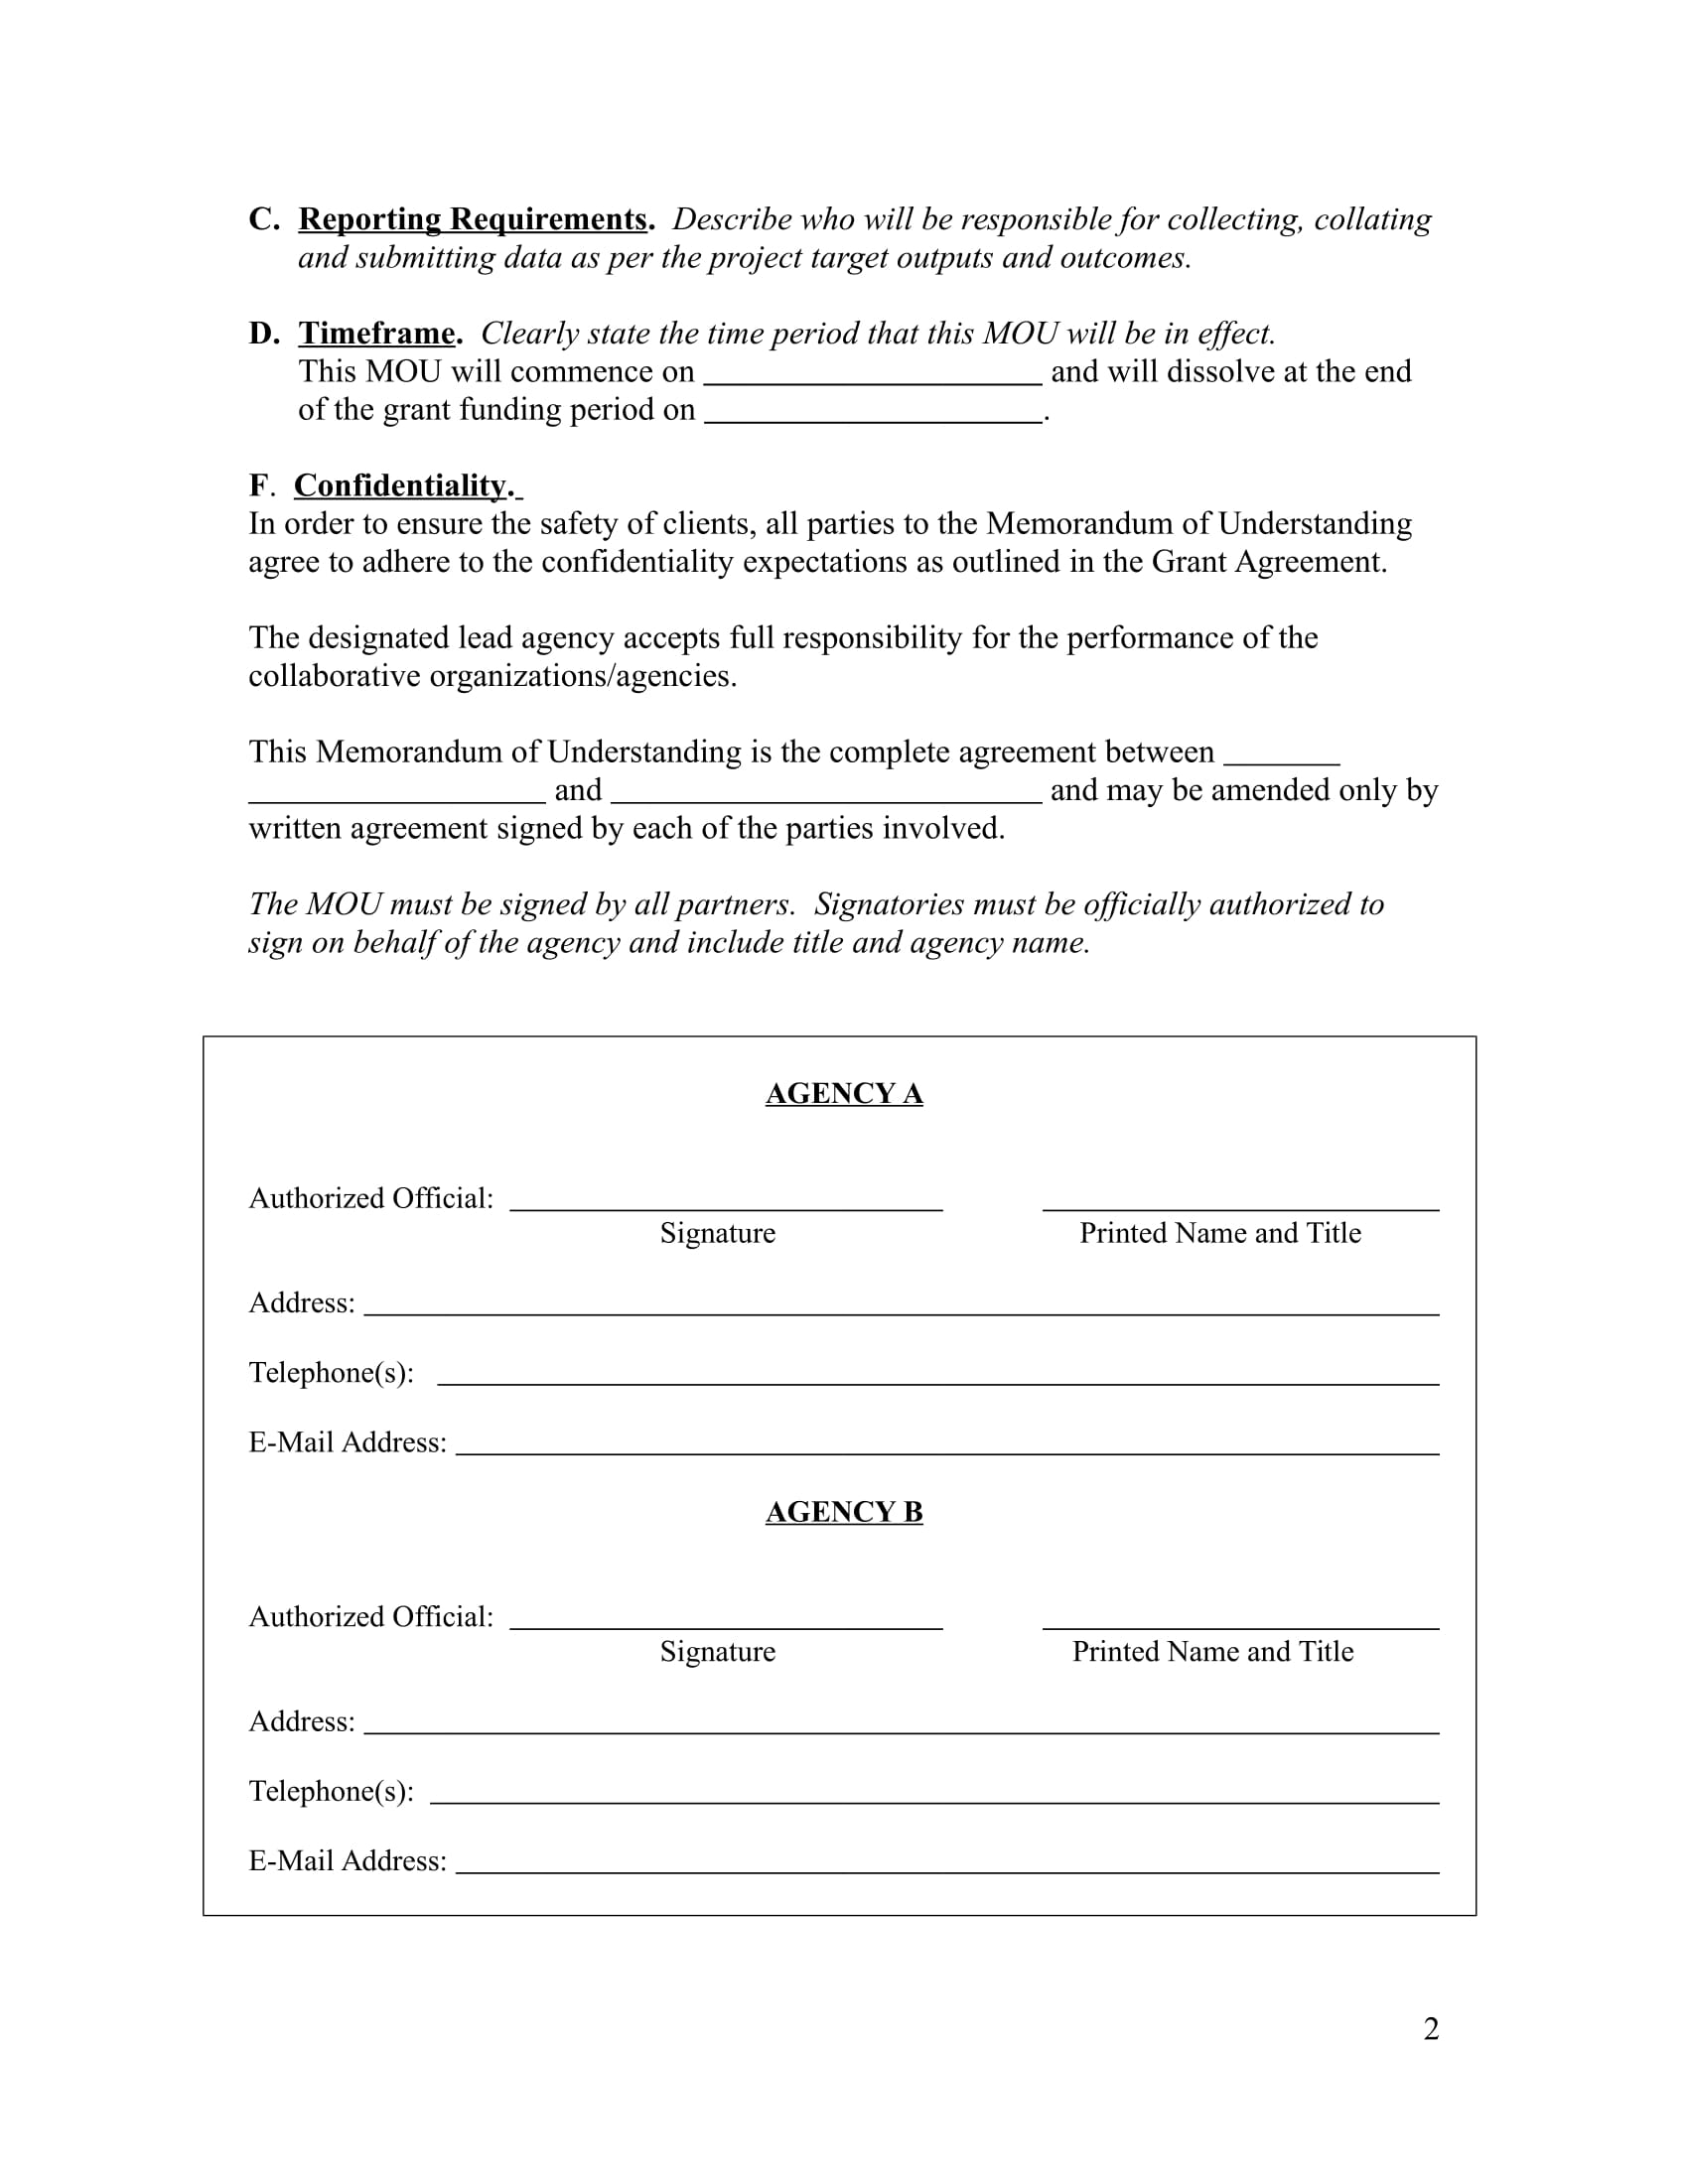 Memorandum download free business letter templates forms menus memorandum of understanding cheaphphosting Choice Image